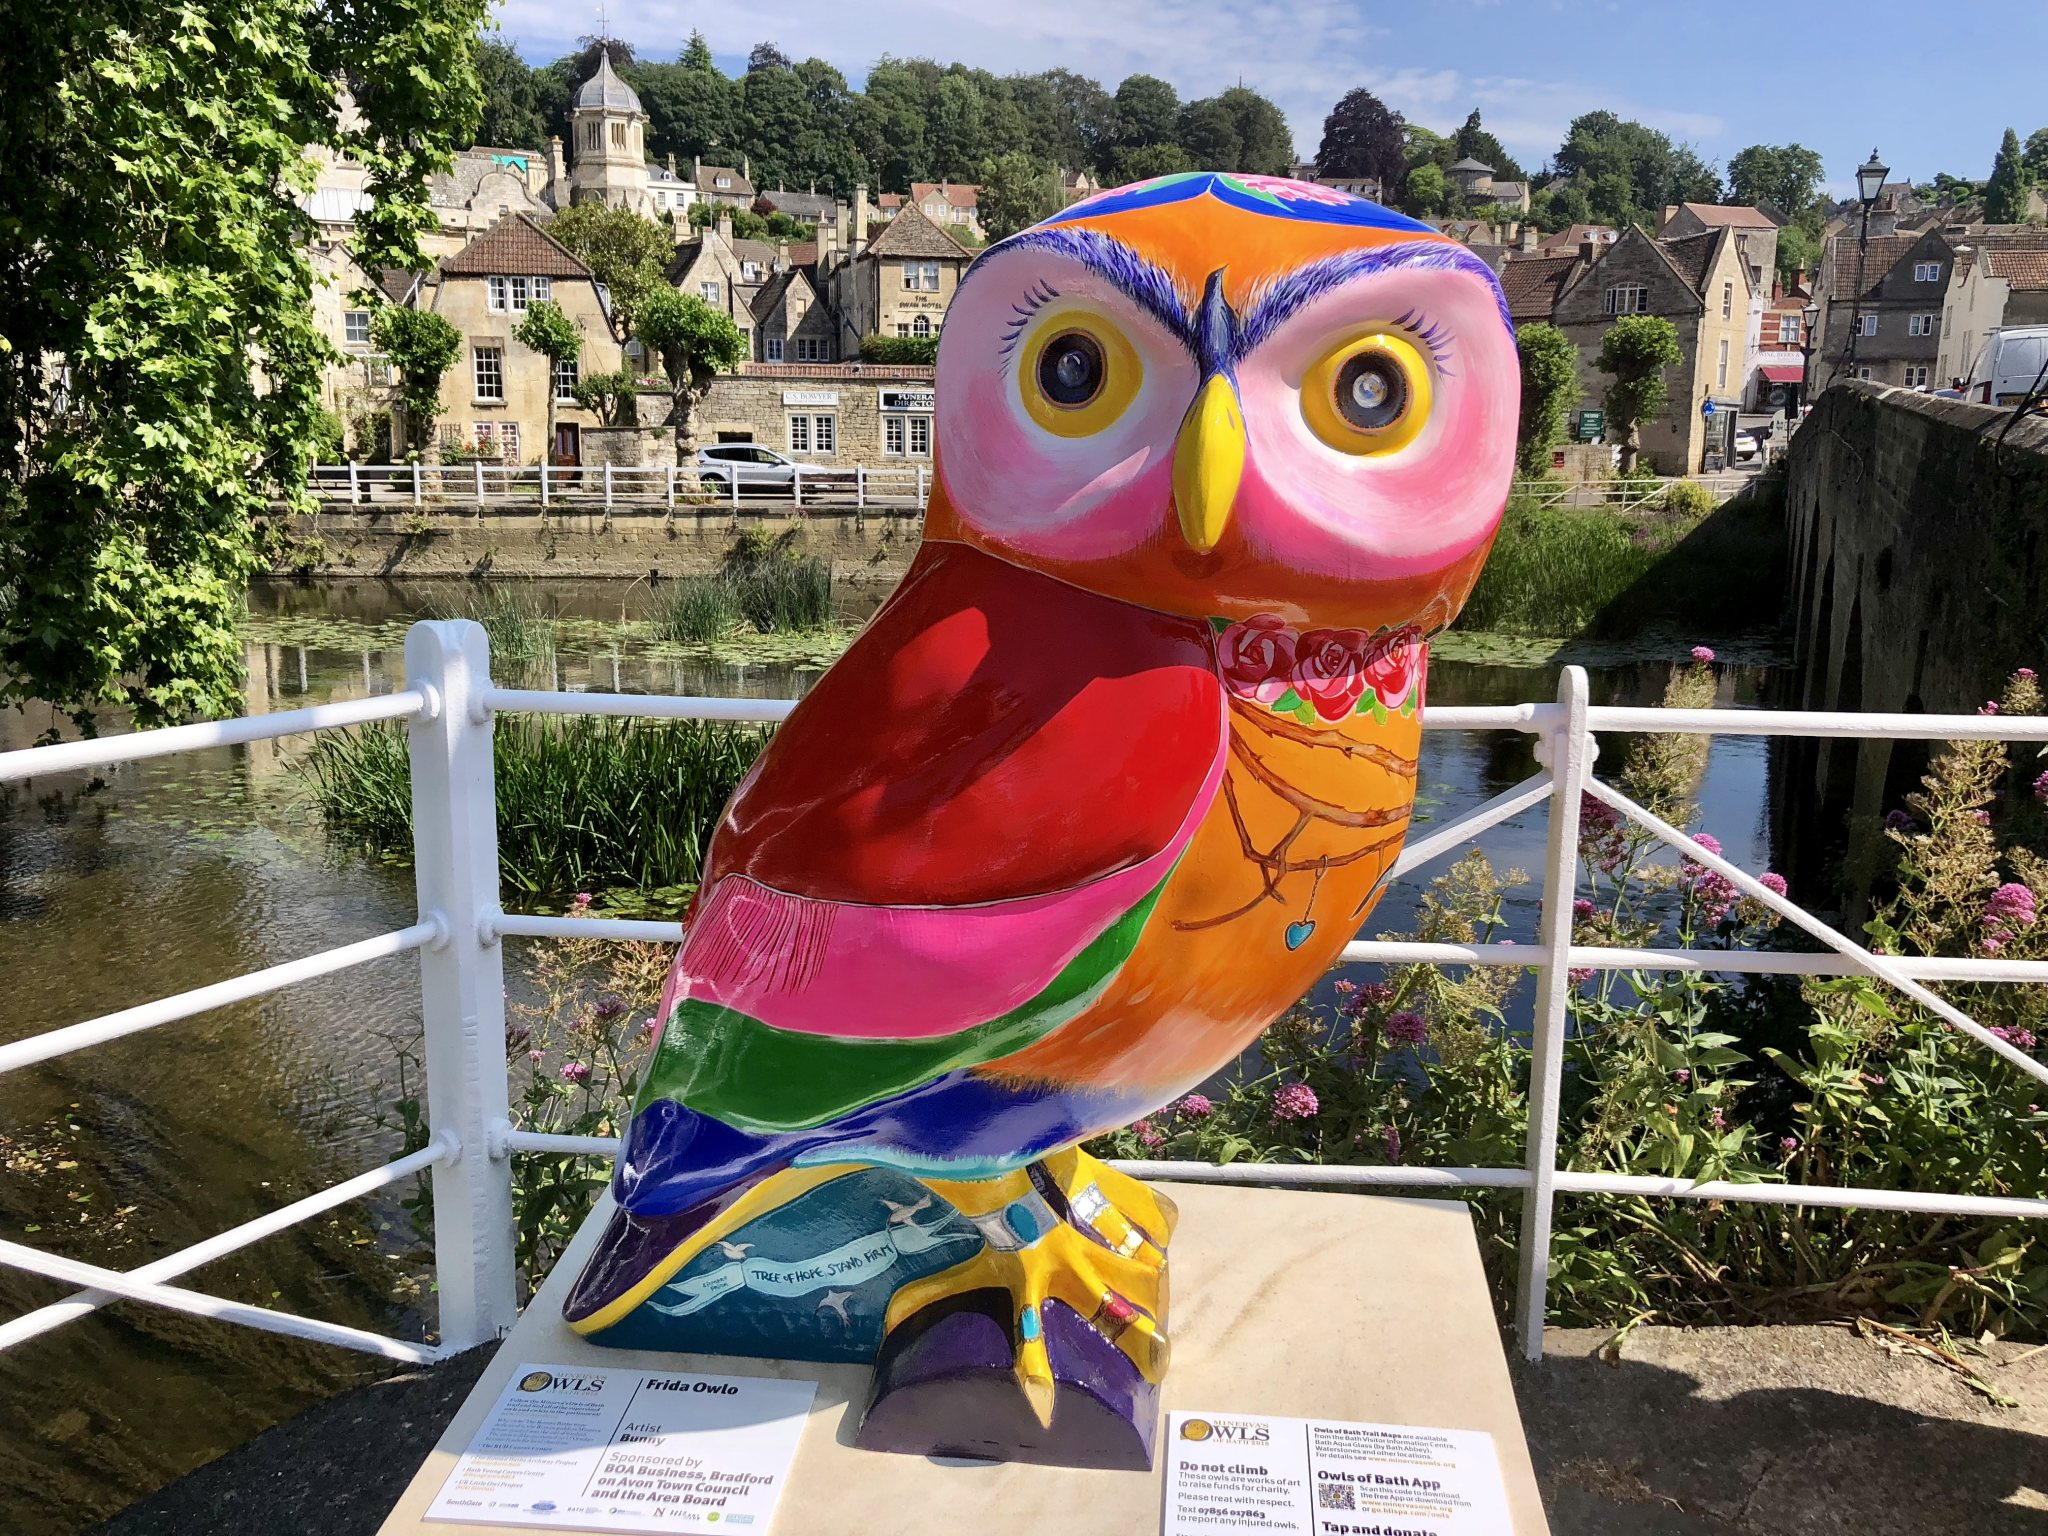 Frida Owlo unveiled in Bradford on Avon